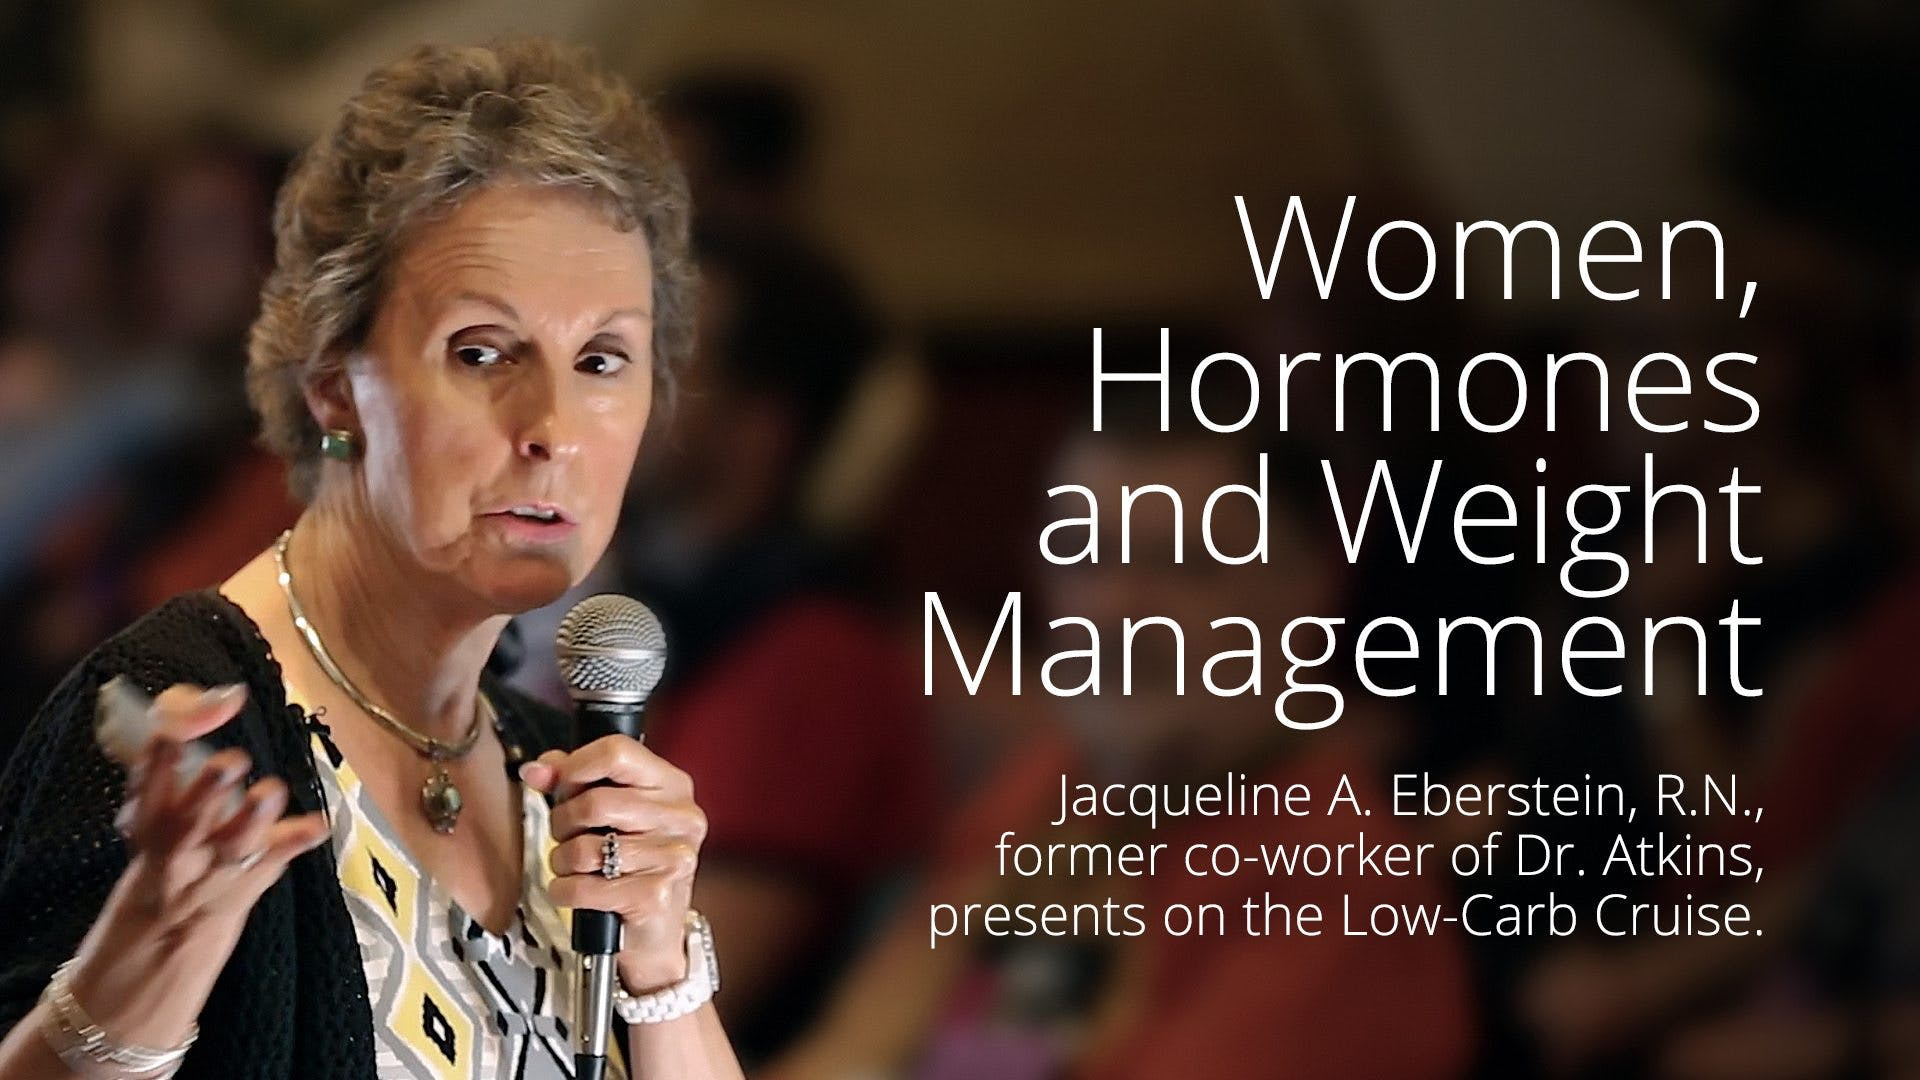 Women, Hormones and Weight Management